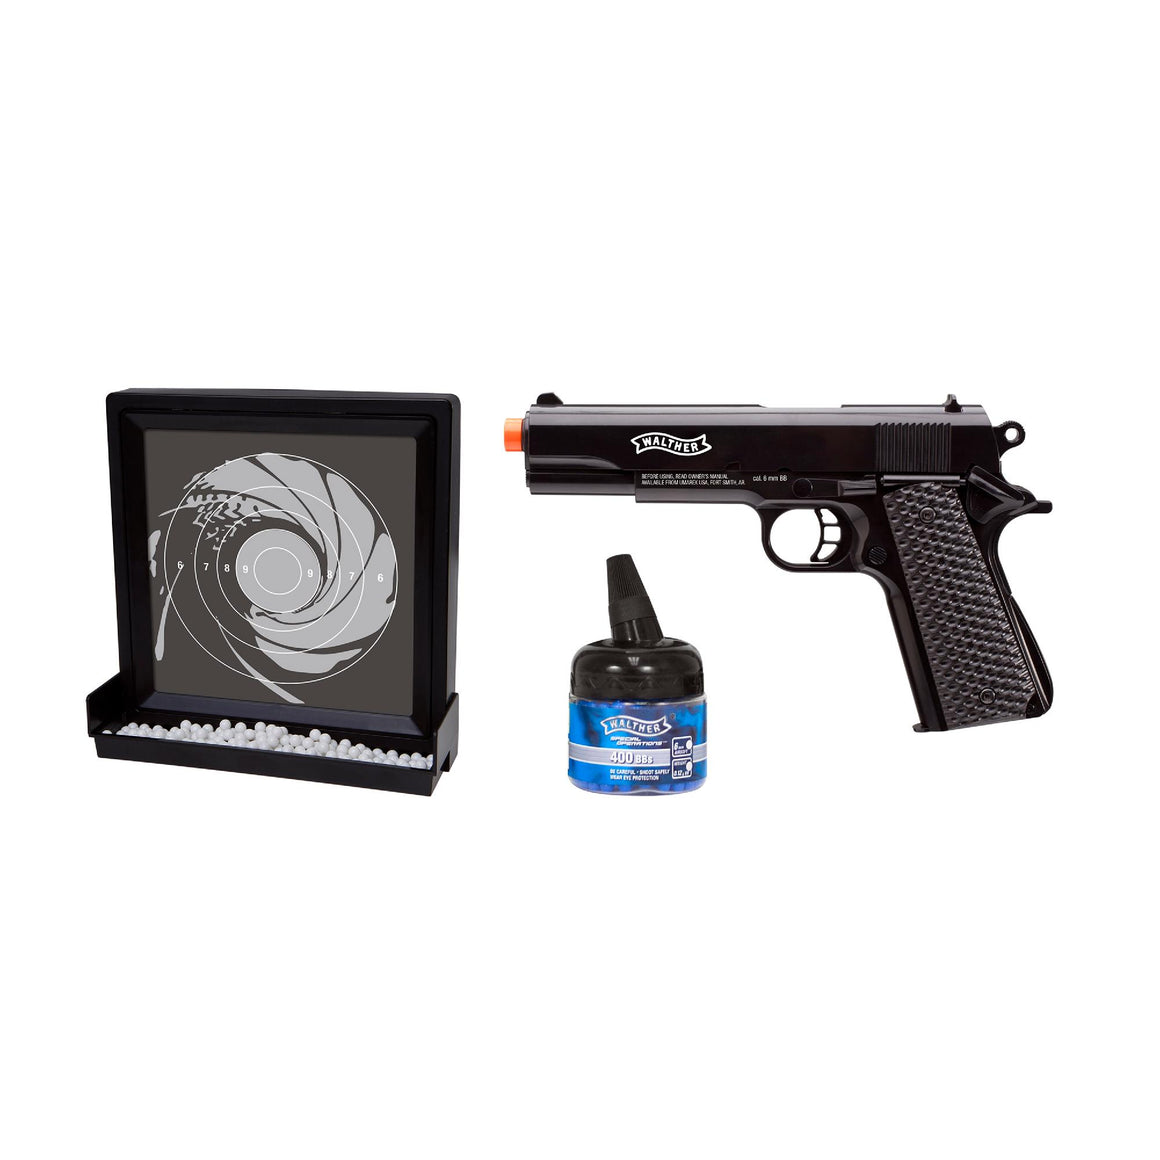 6mm Walther Target Pack - Black